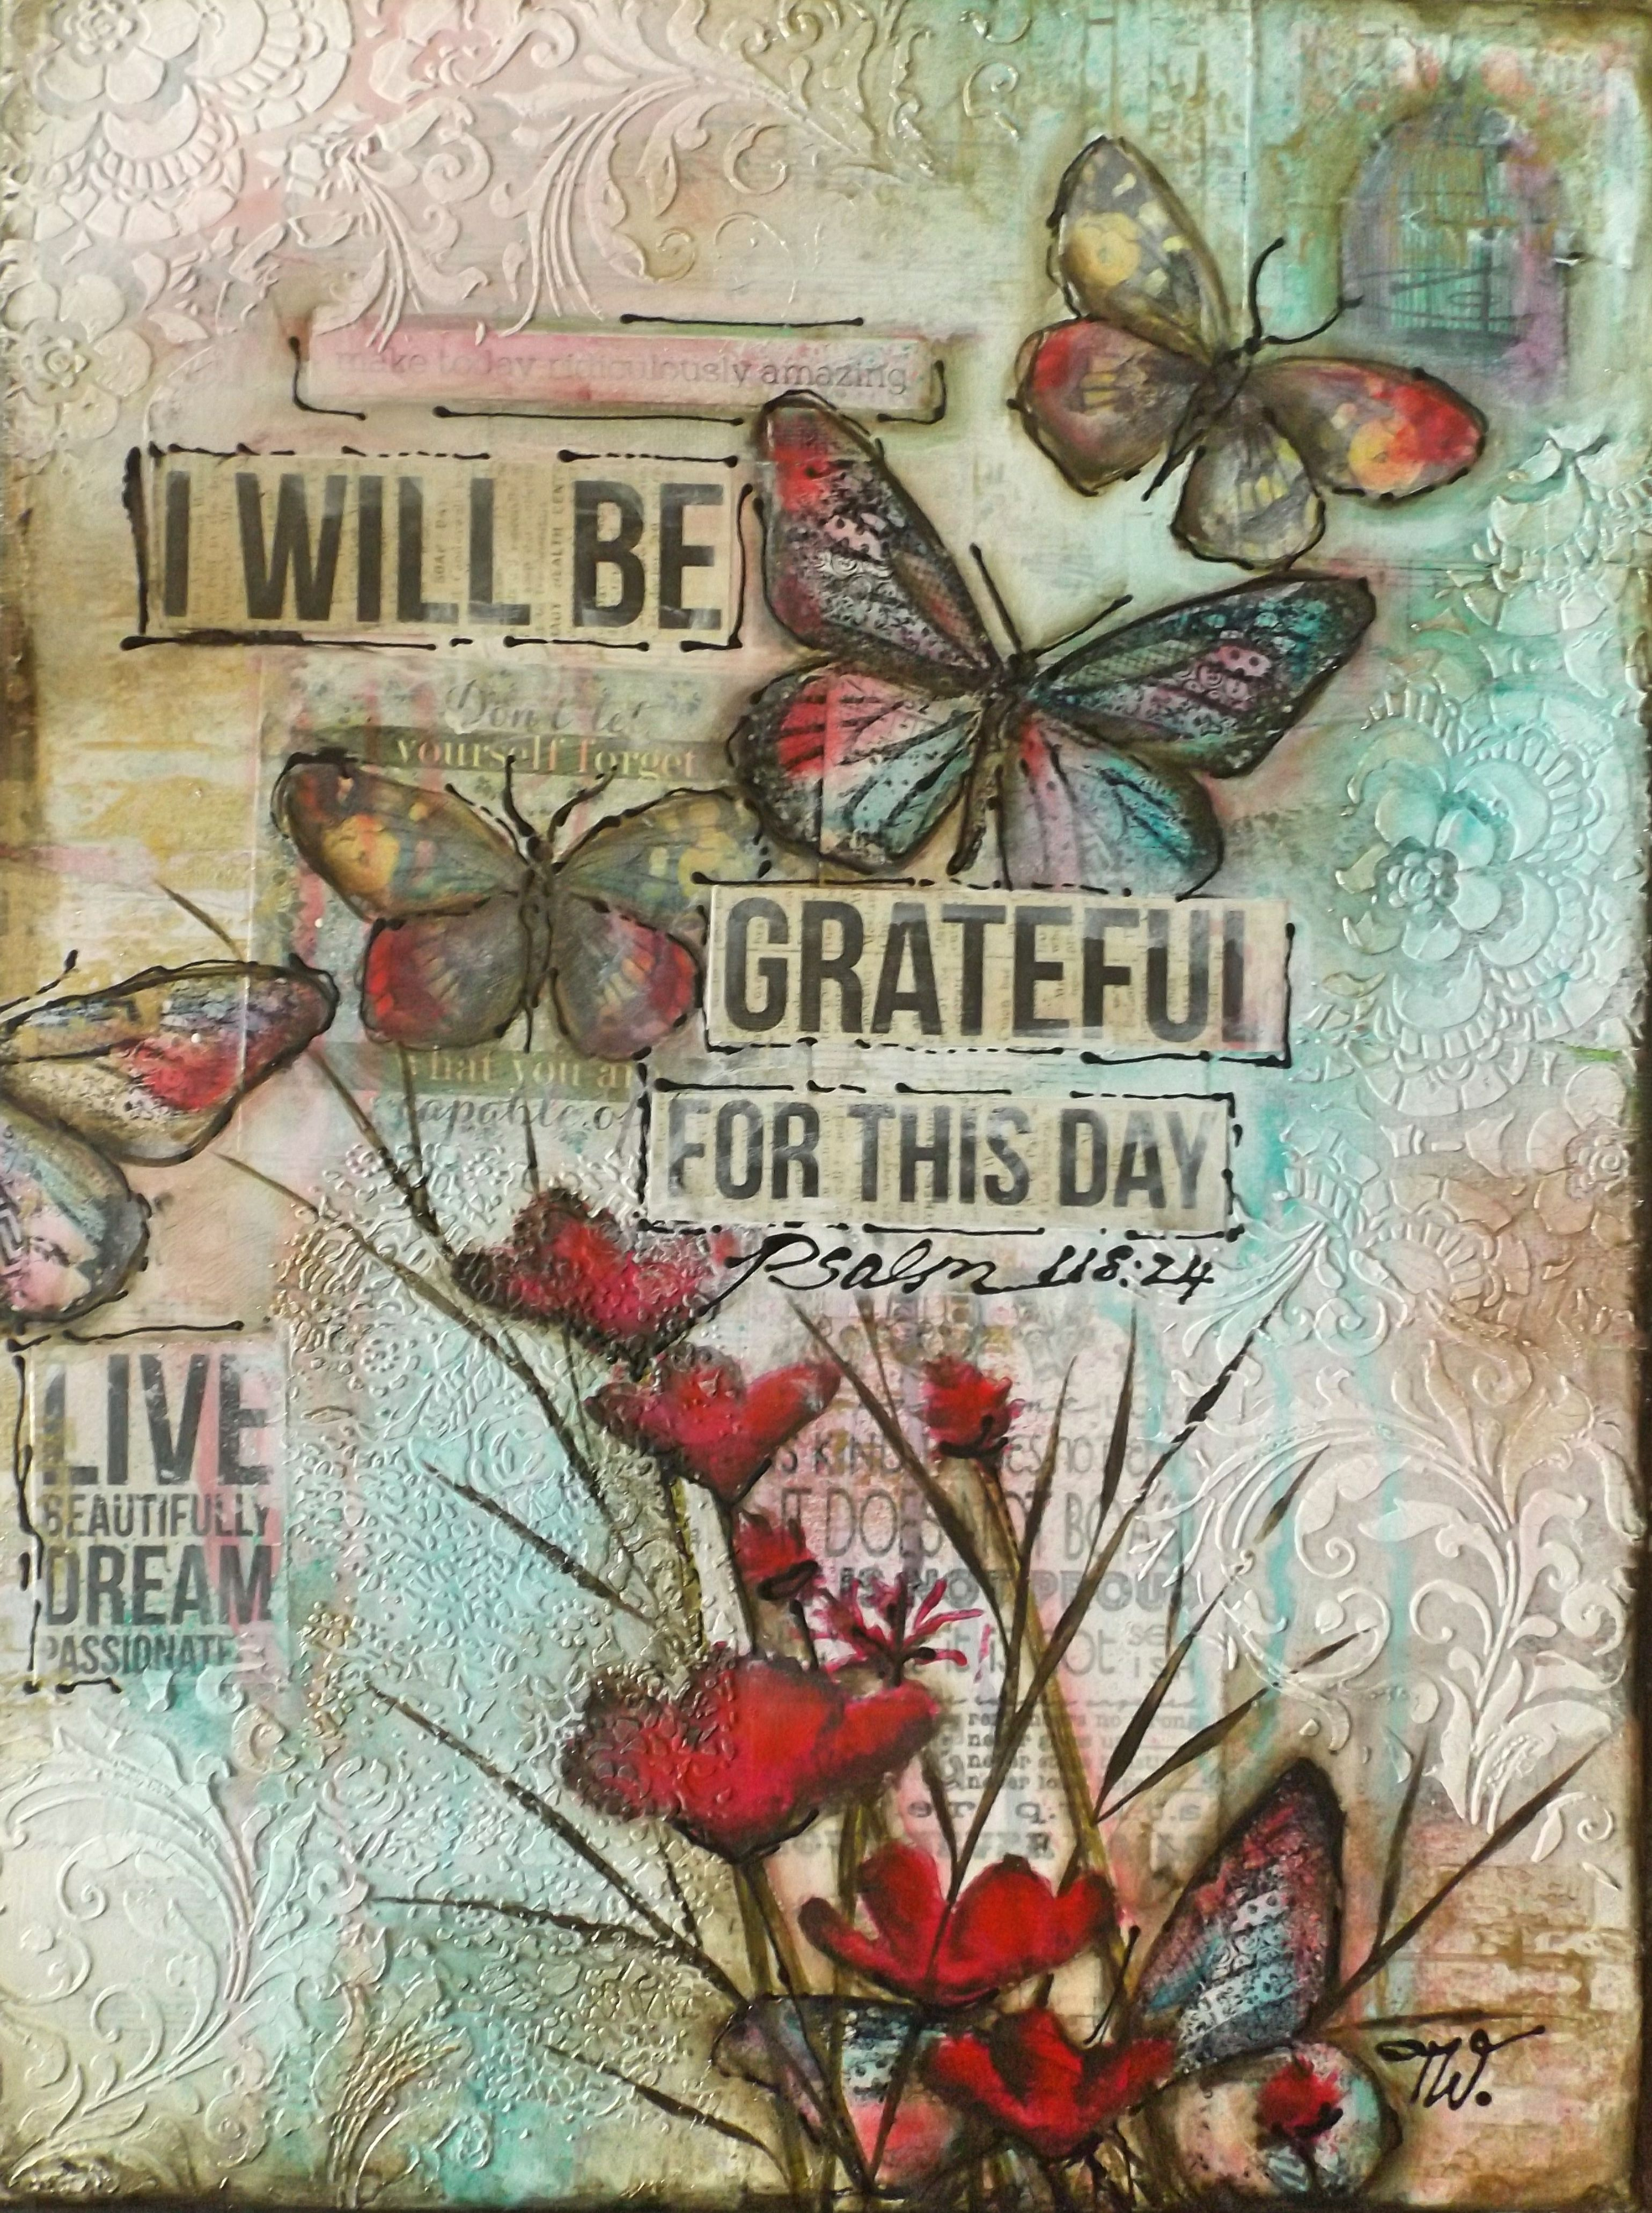 Mixed media canvas tim holtz stencils donna downey stamps decoart crackle medium paper butterflies artwork by tracey white 2015